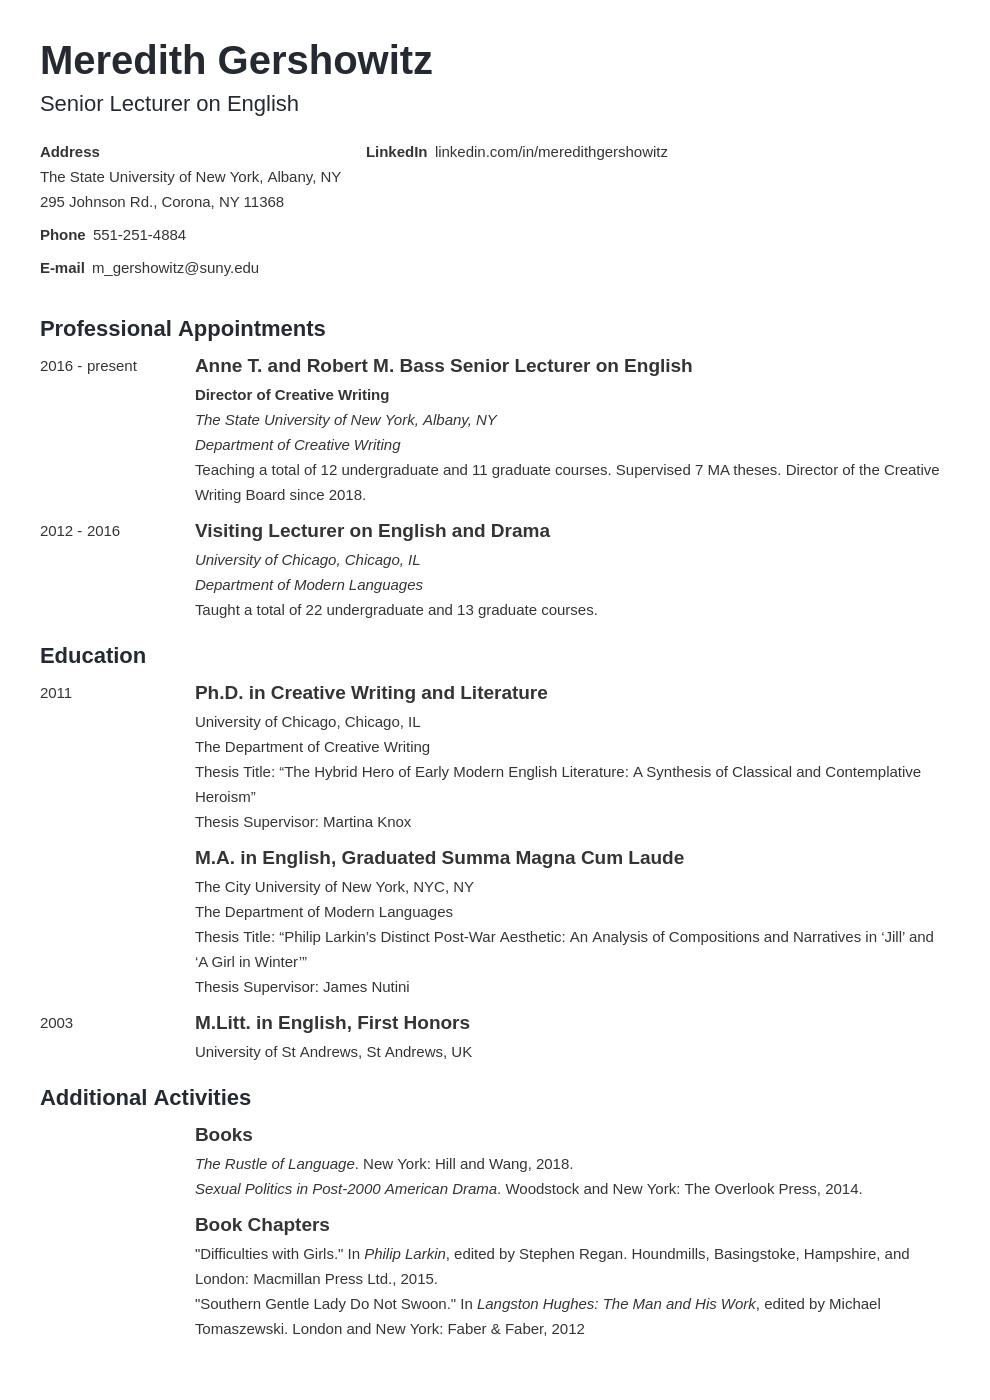 cv academic template minimo